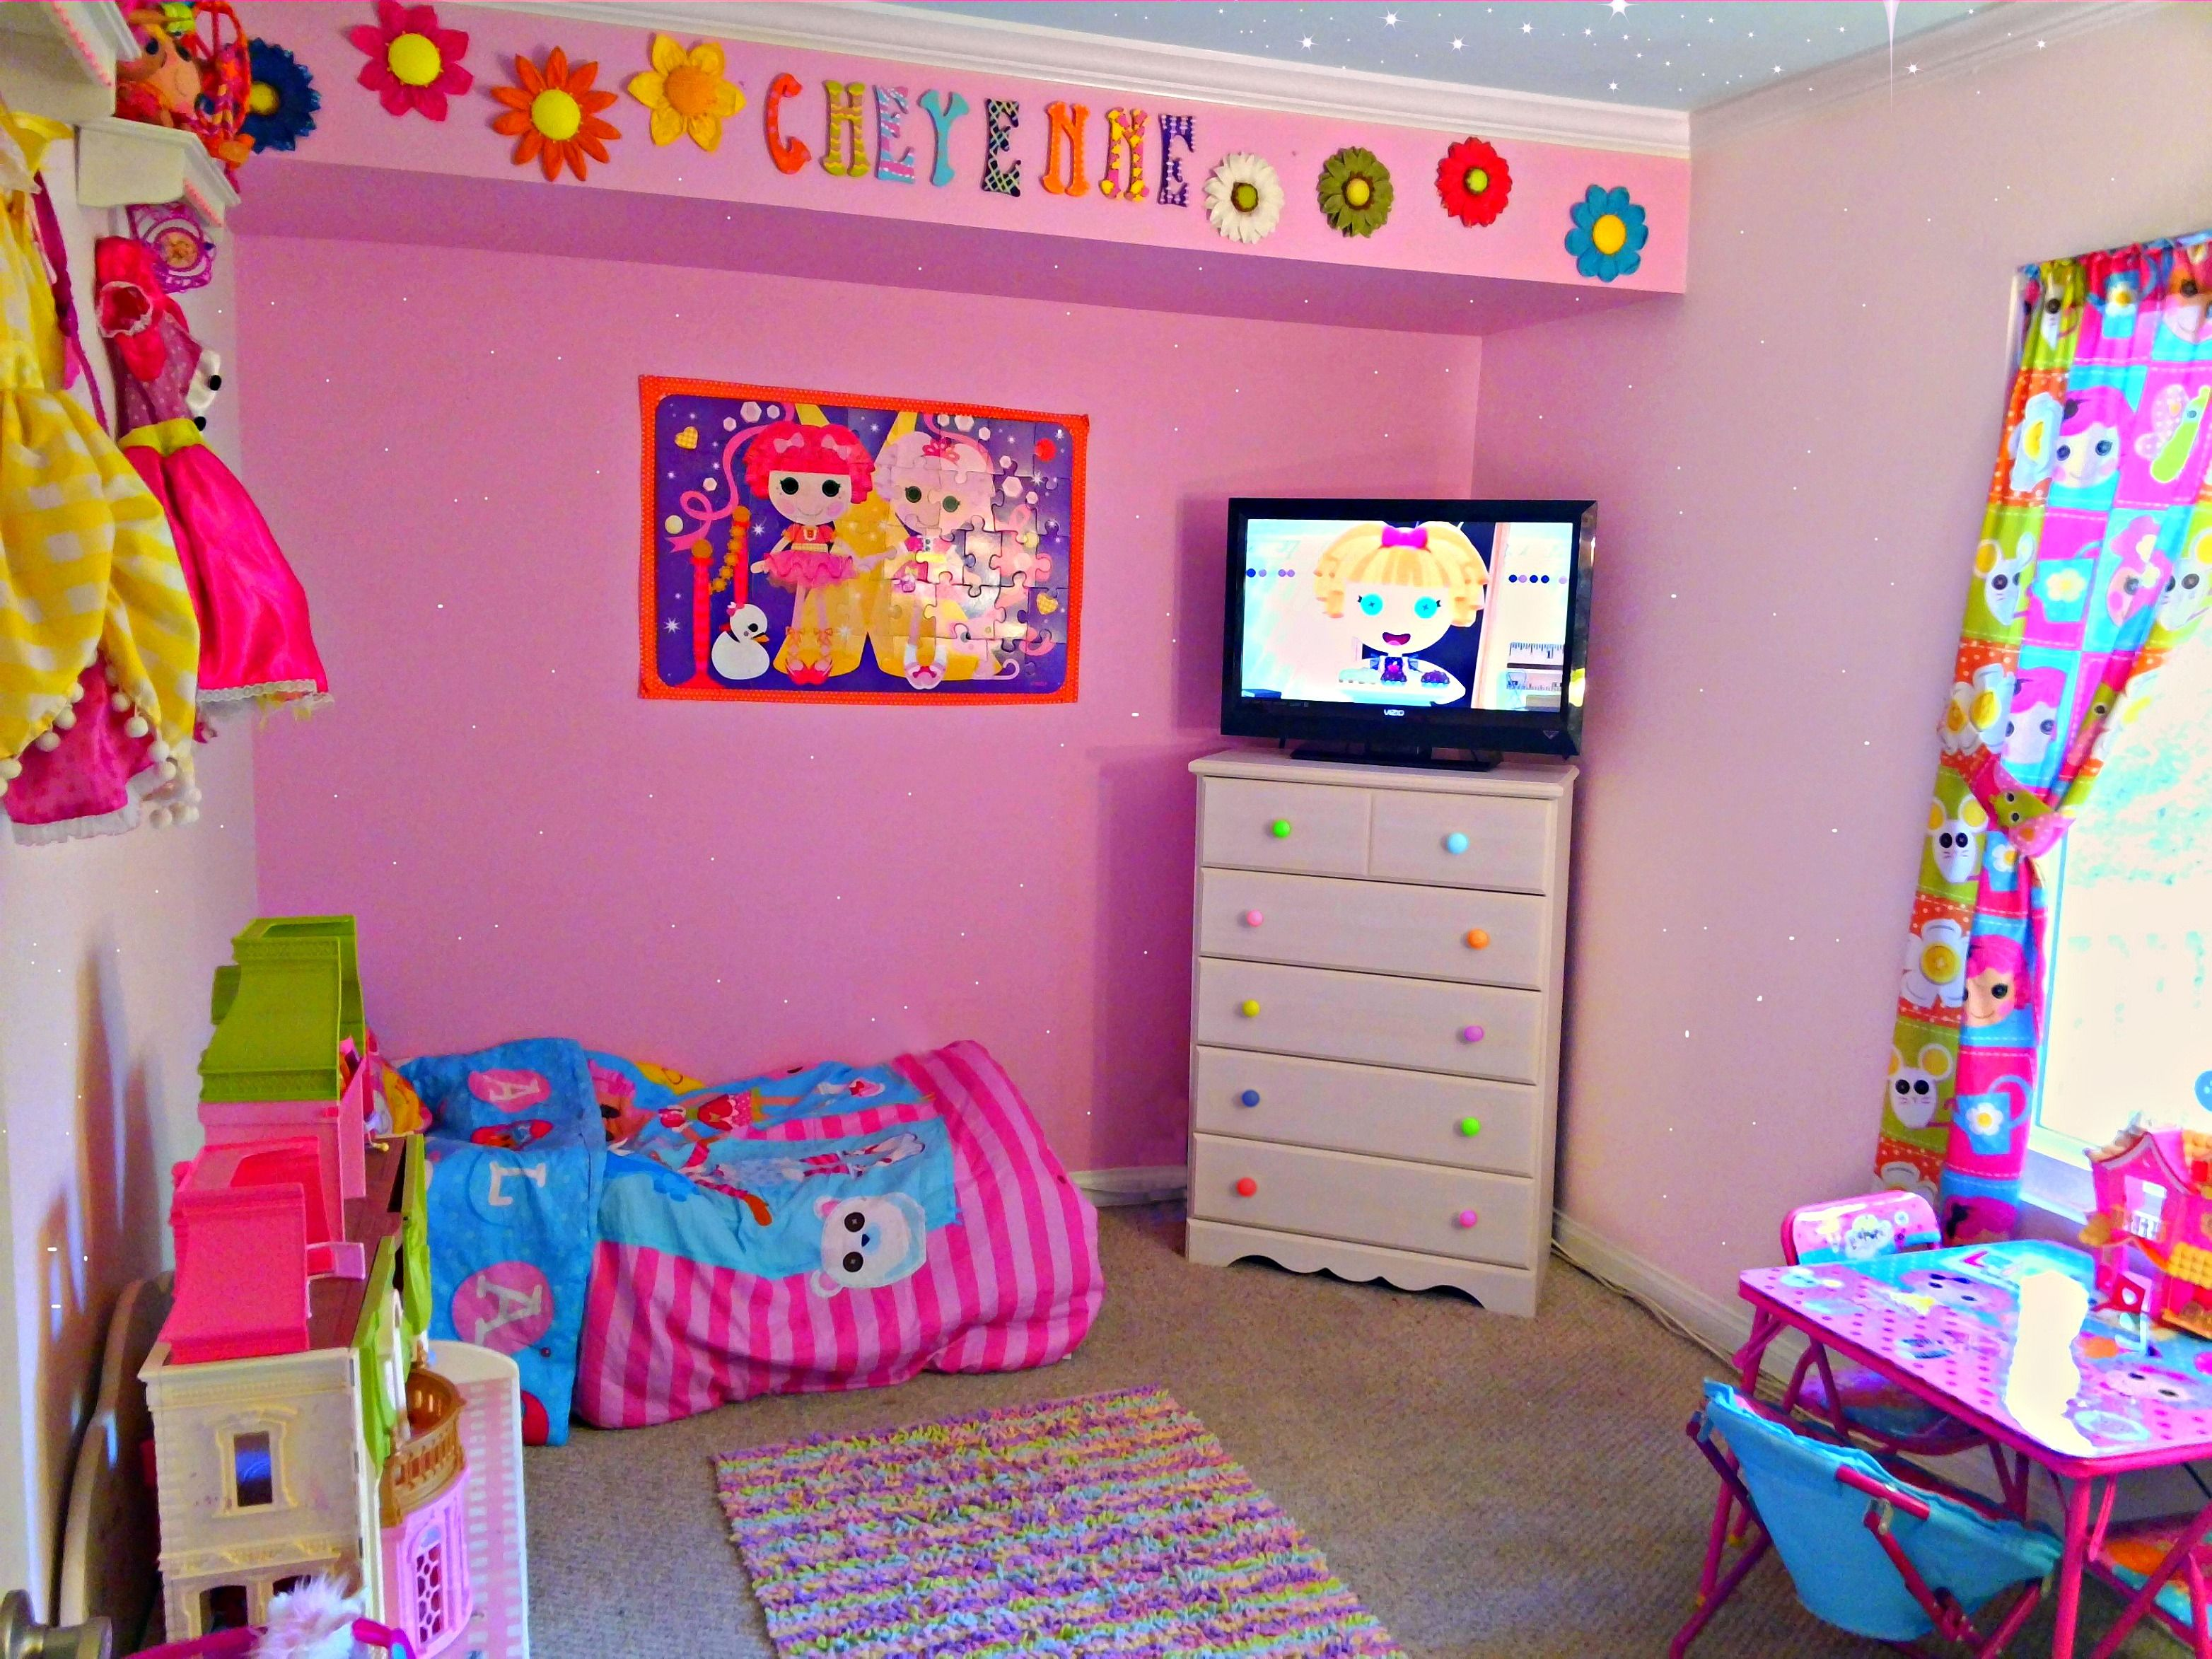 Cheyennes Lalaloopsy room with pink glitter wall and ceiling